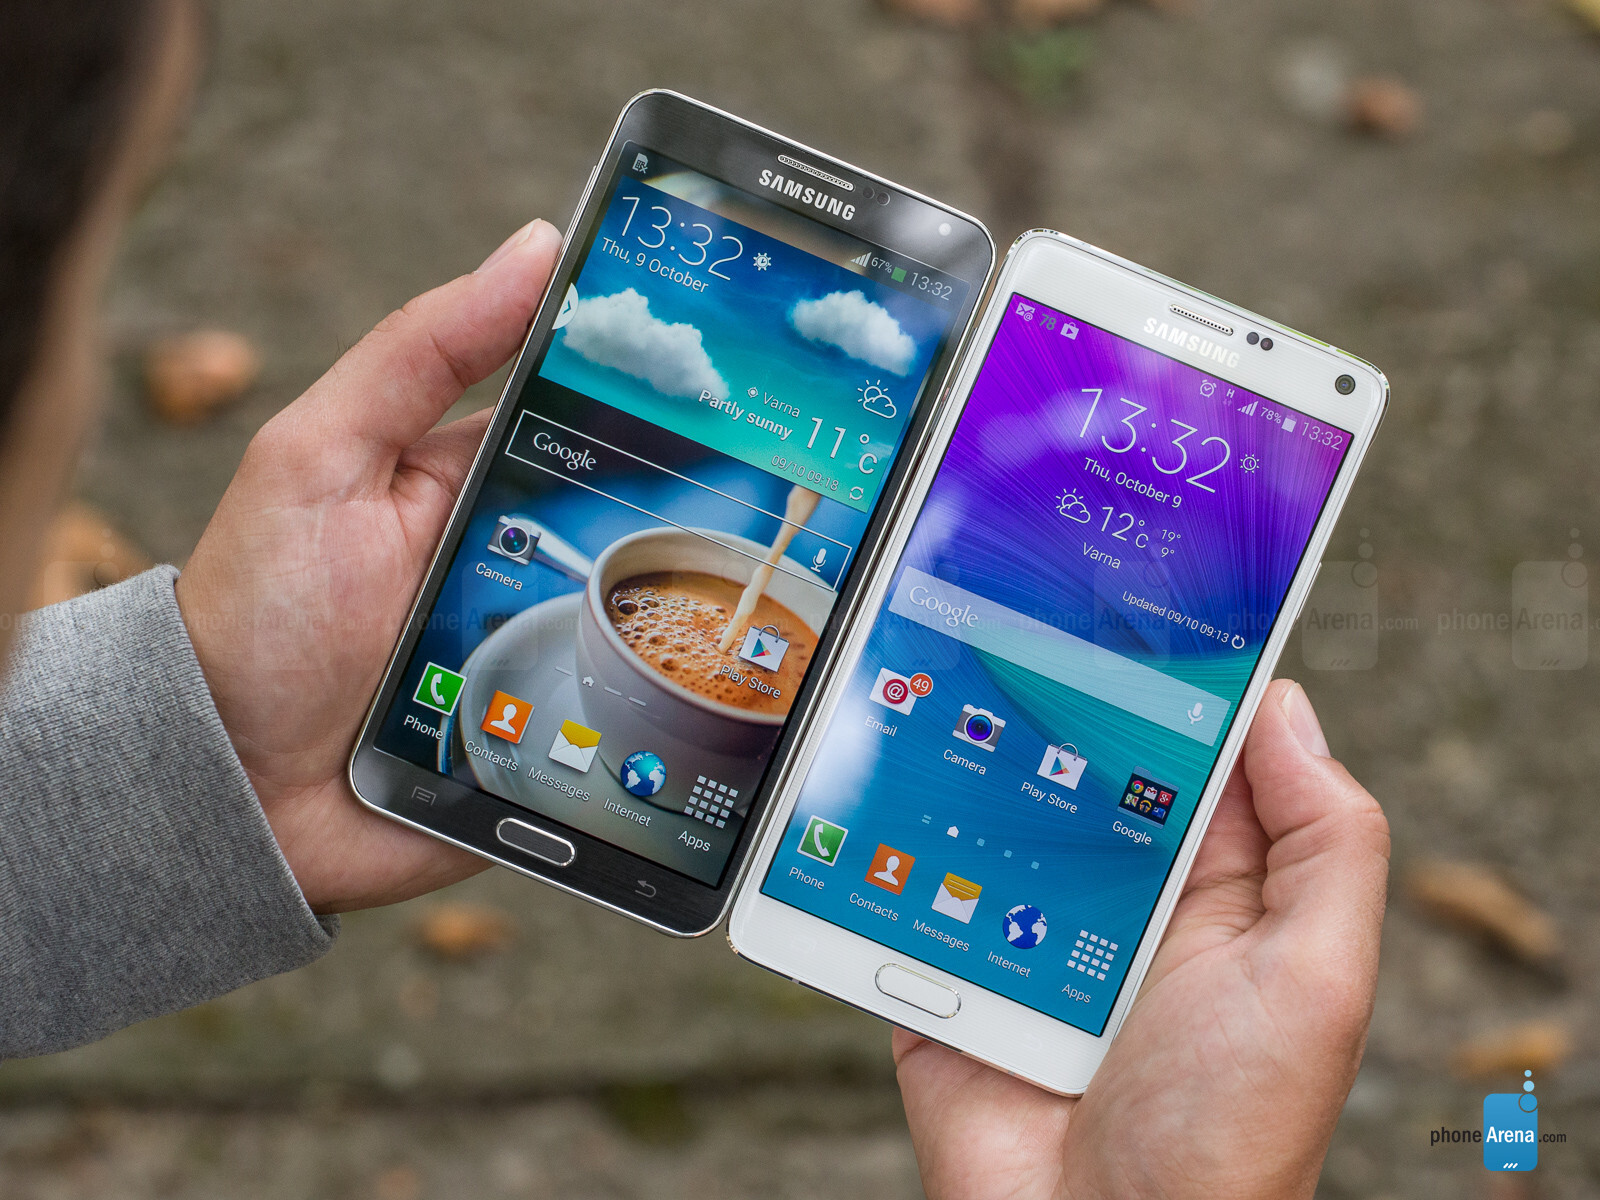 Samsung Galaxy Note 3 - Full phone specifications